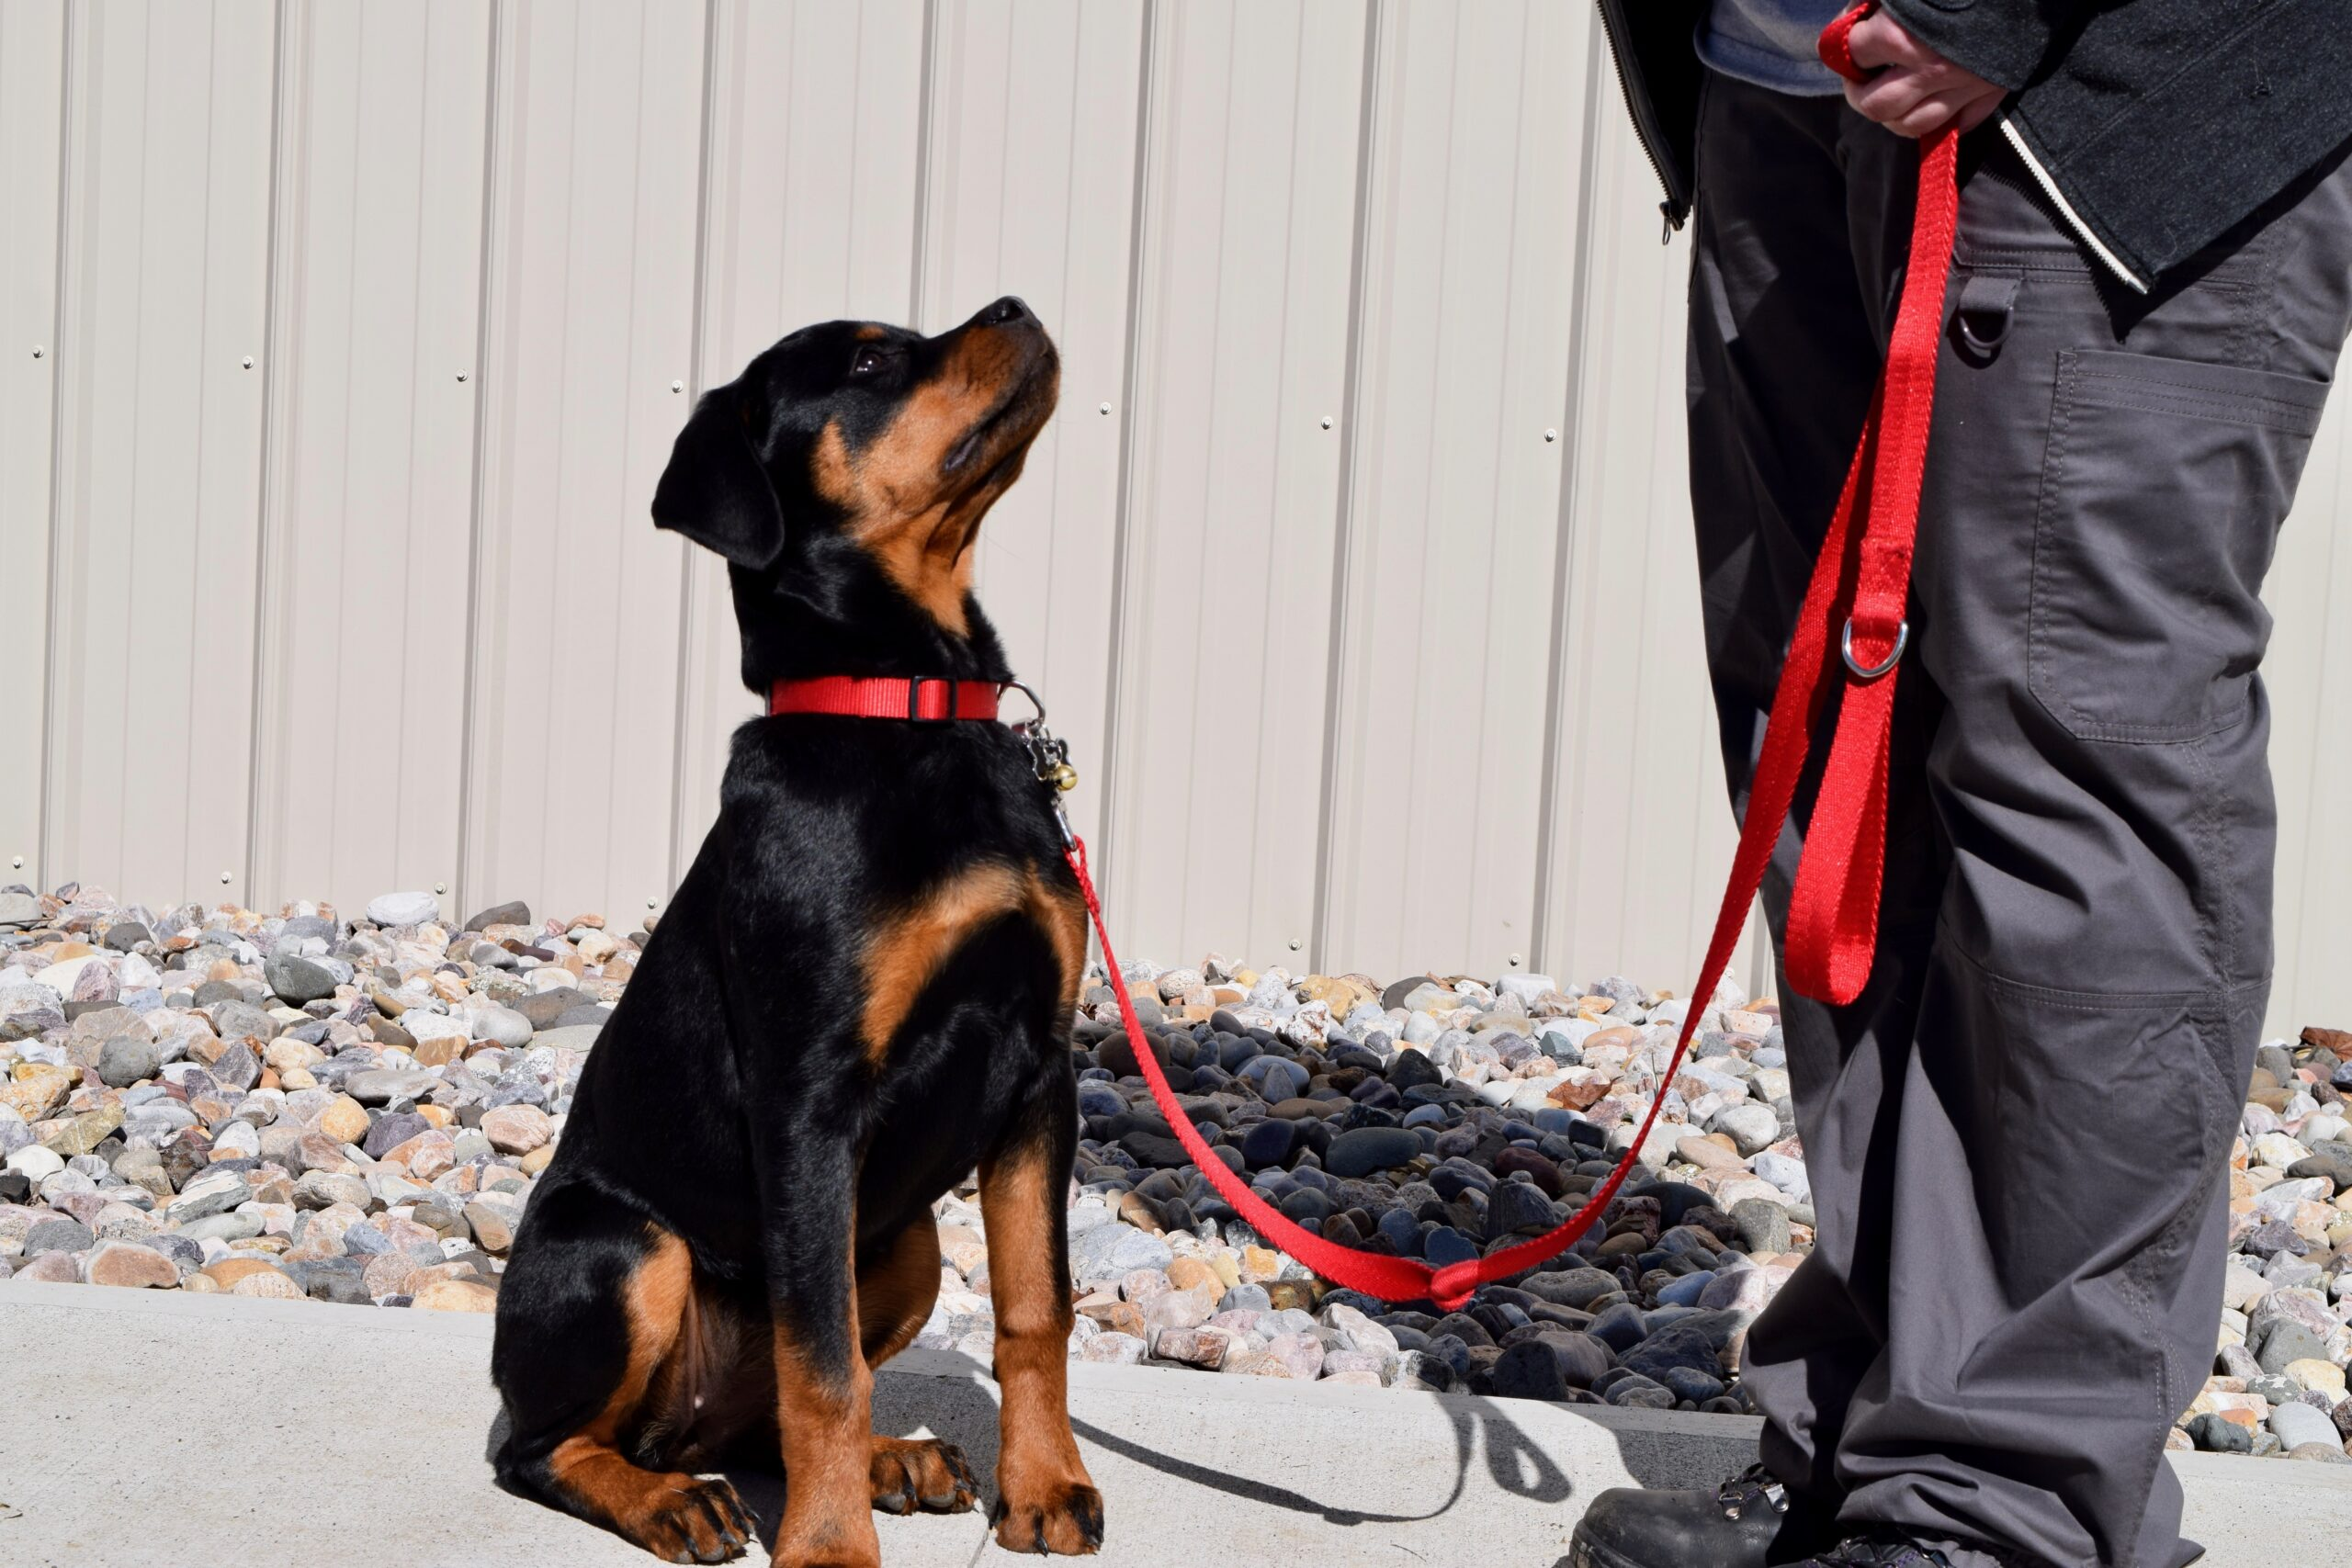 Rottweiler puppy leash training